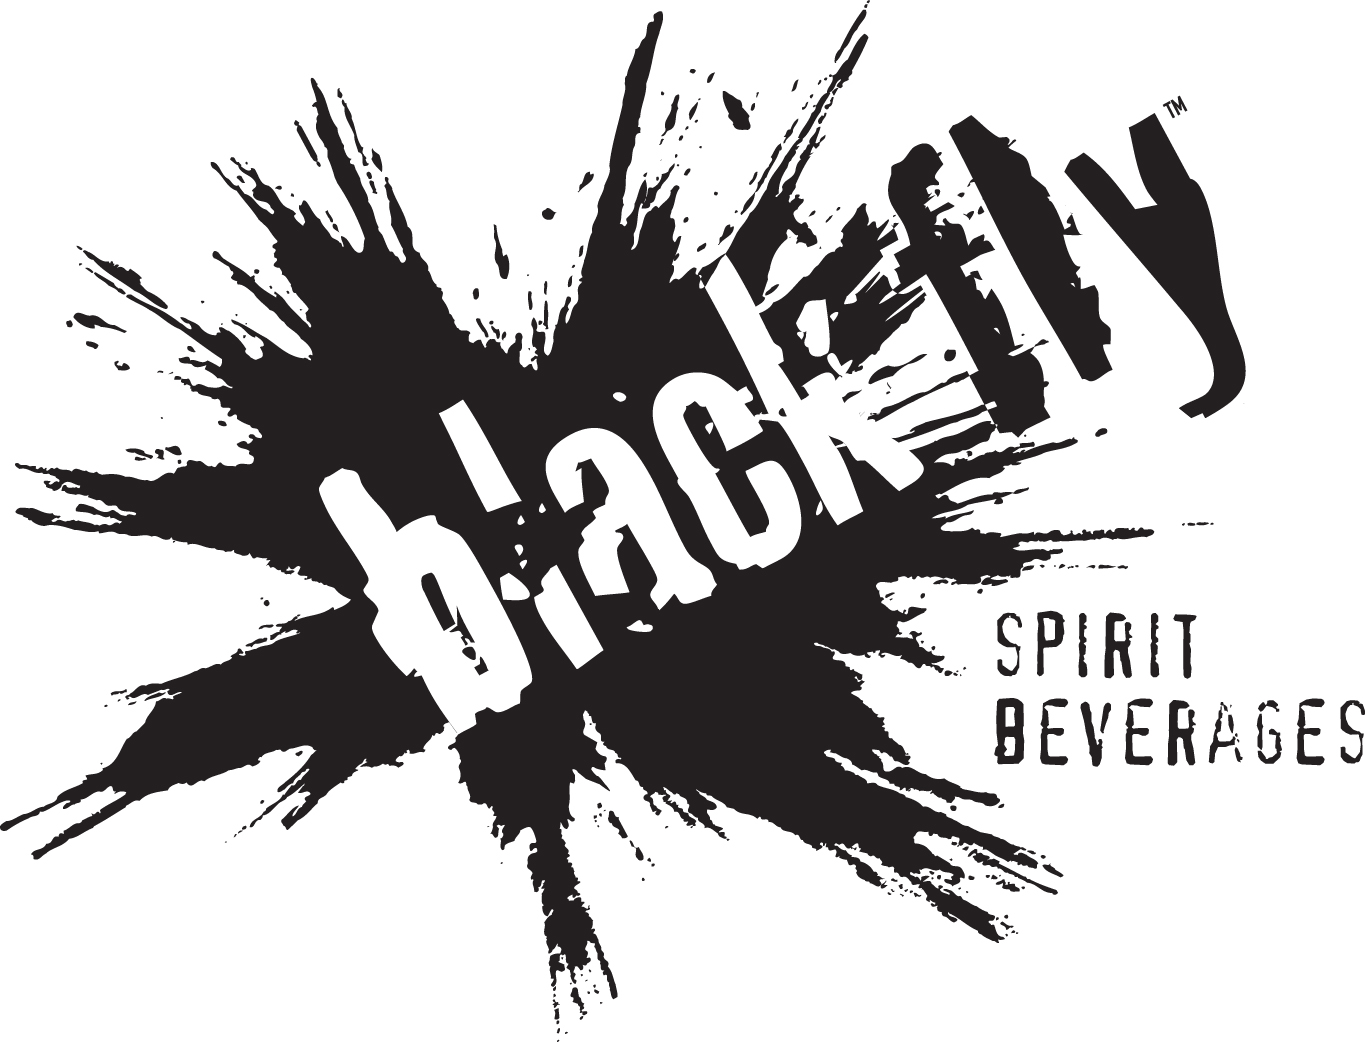 black fly beverage company inc Use location reset location disable location enable location products products beer wine spirits refreshment accessories new arrivals.